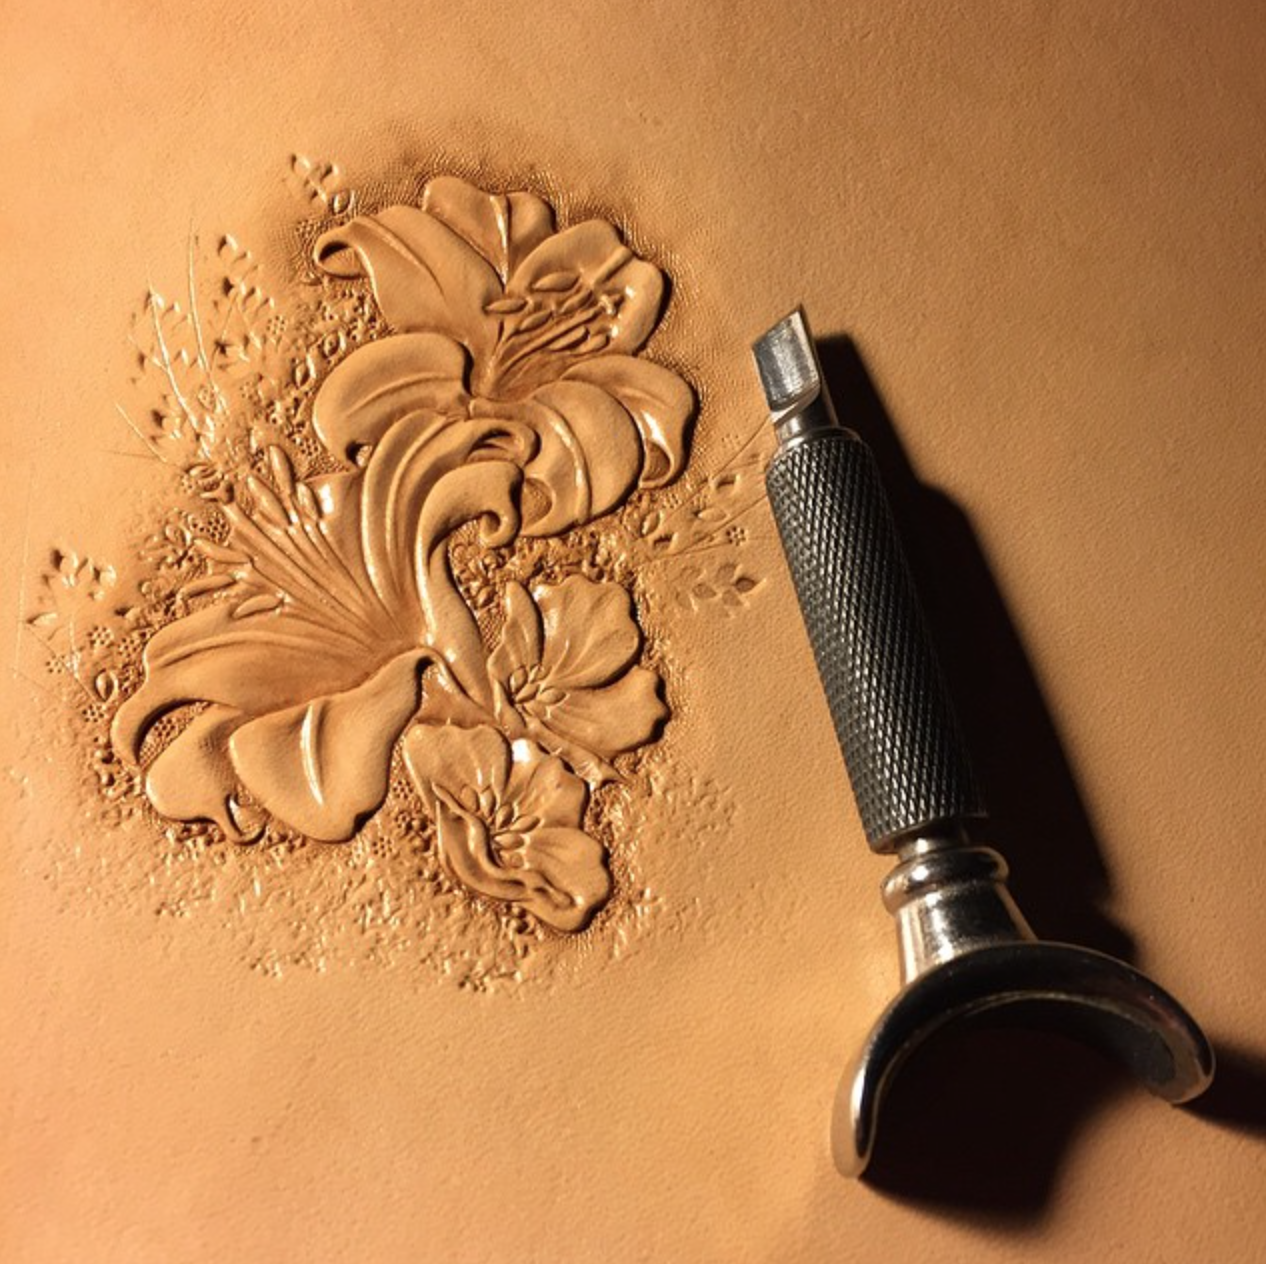 Sheridan flower work leather tooling pinterest for Leather flowers for crafts